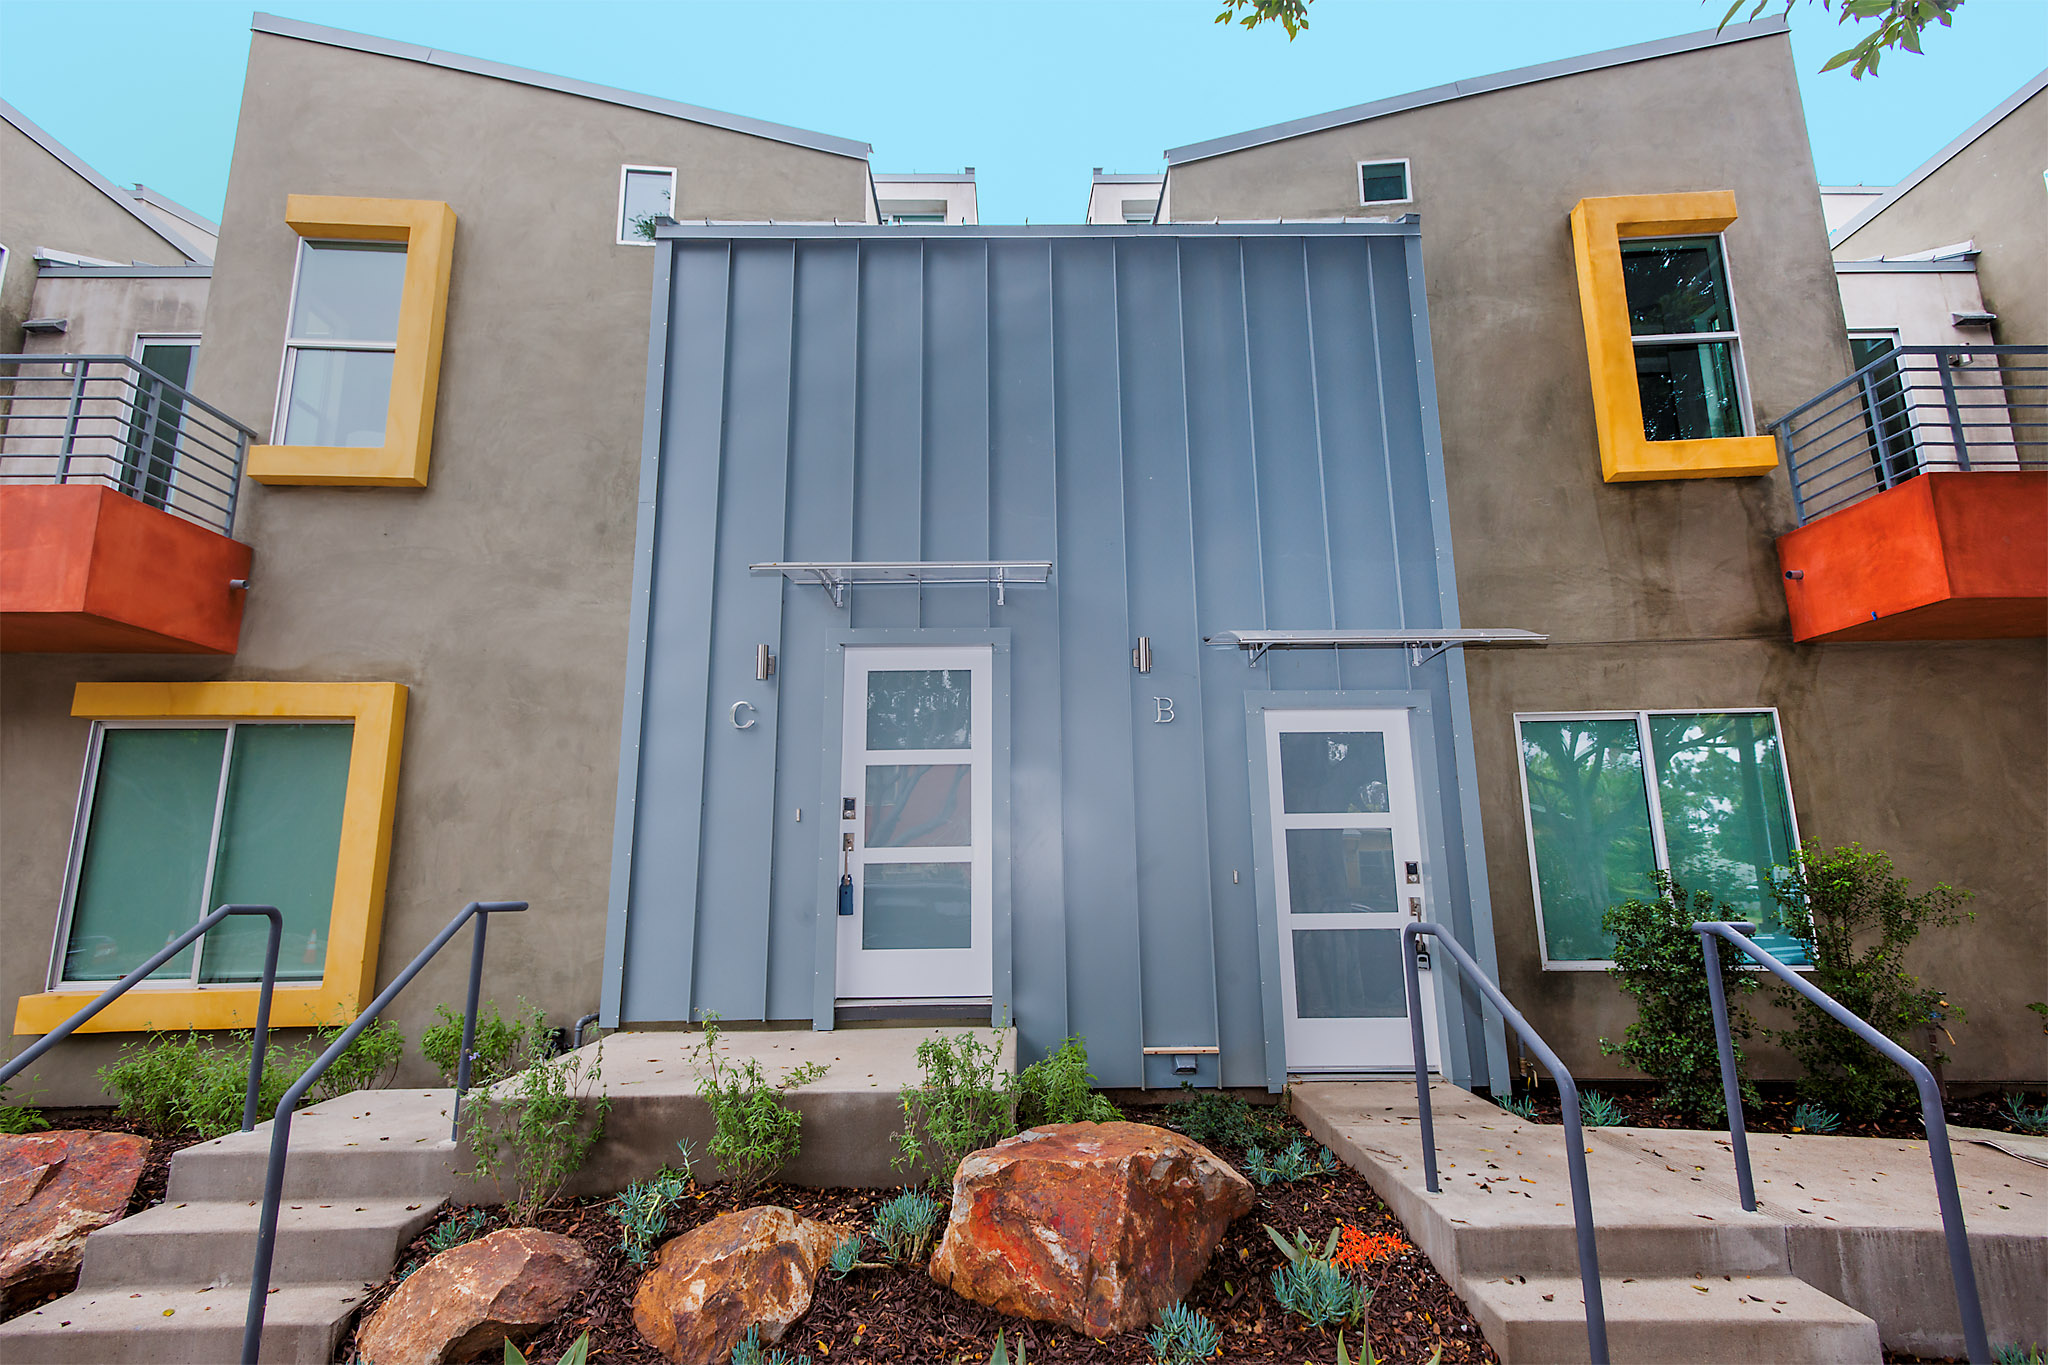 Standing Seam Metal Walls and Roof, Santa Monica